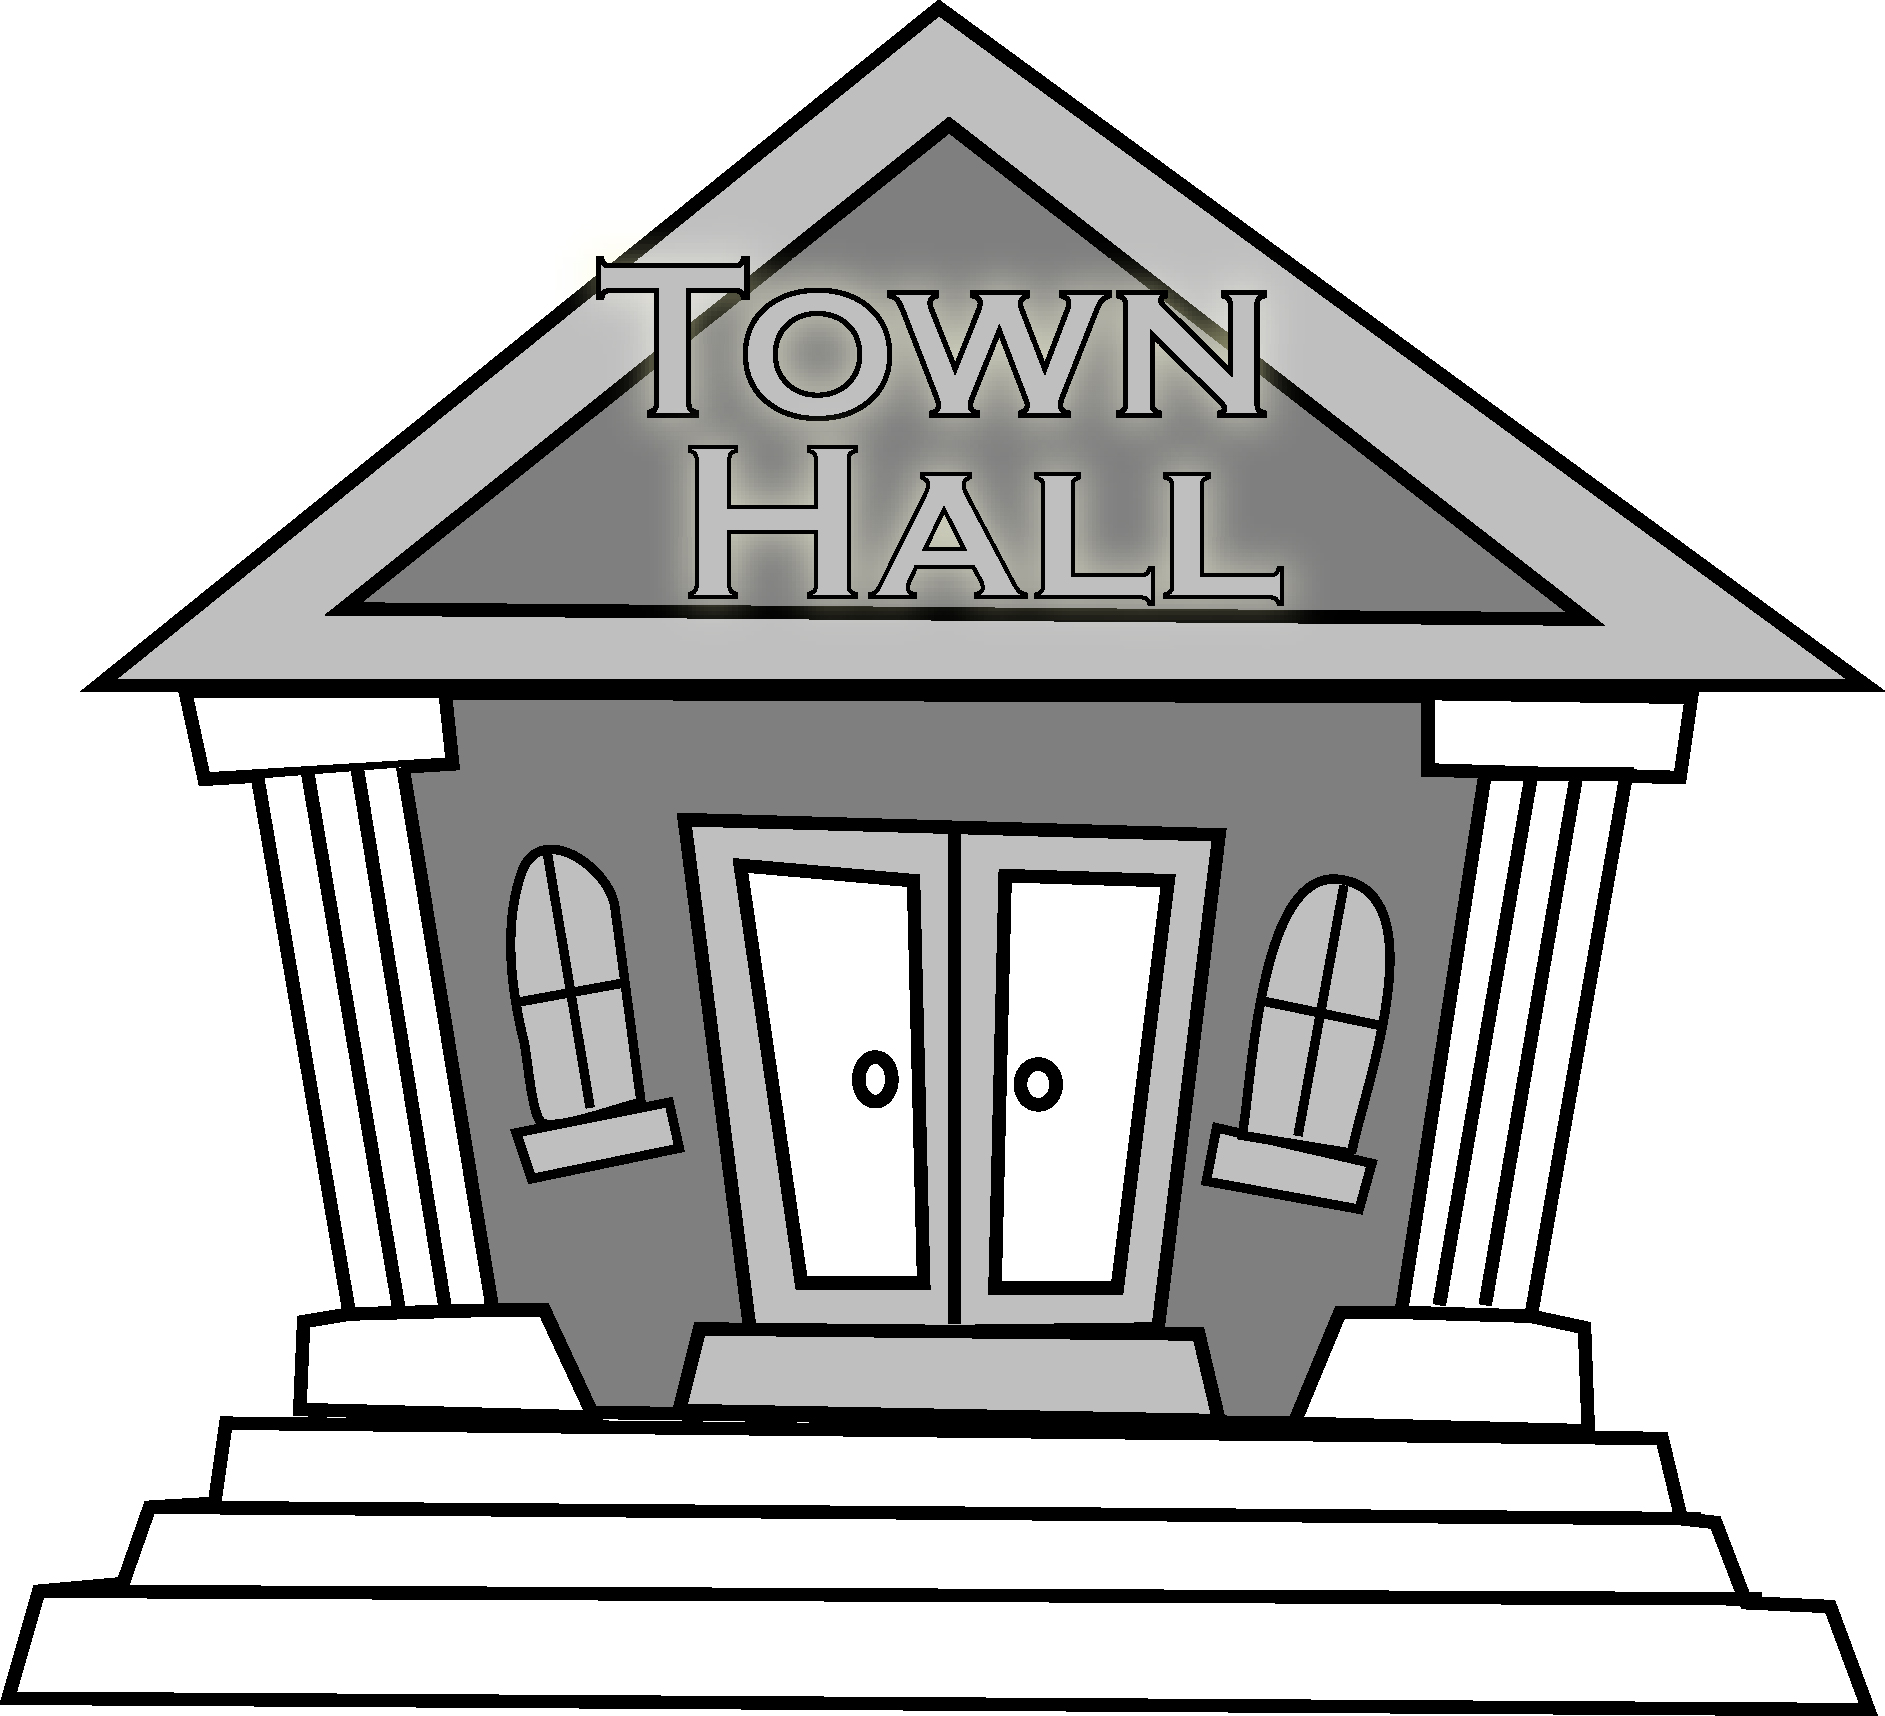 Town Hall Building Clipart-Town hall building clipart-9